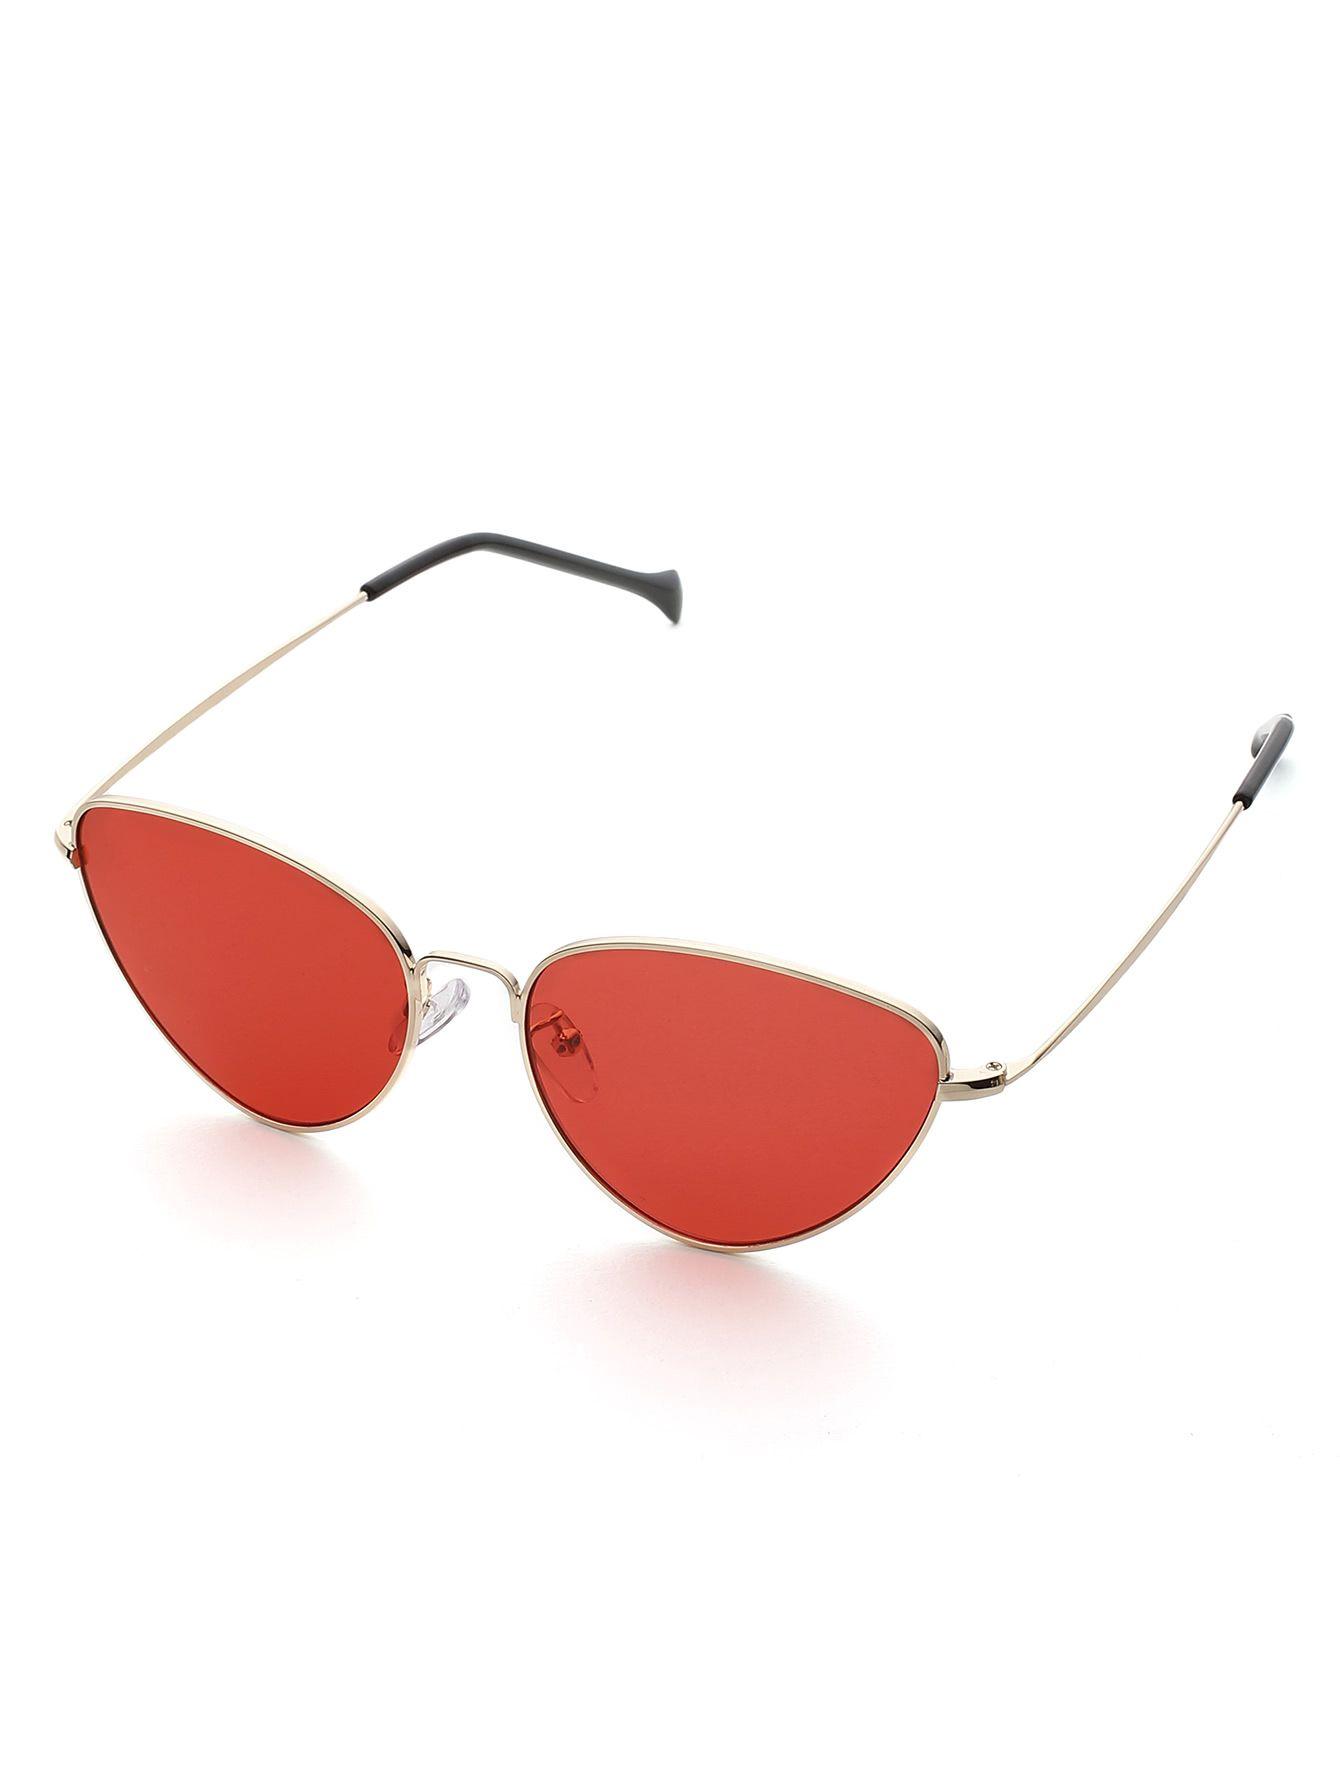 5283ae19f8 Oval Shaped Flat Lens Sunglasses